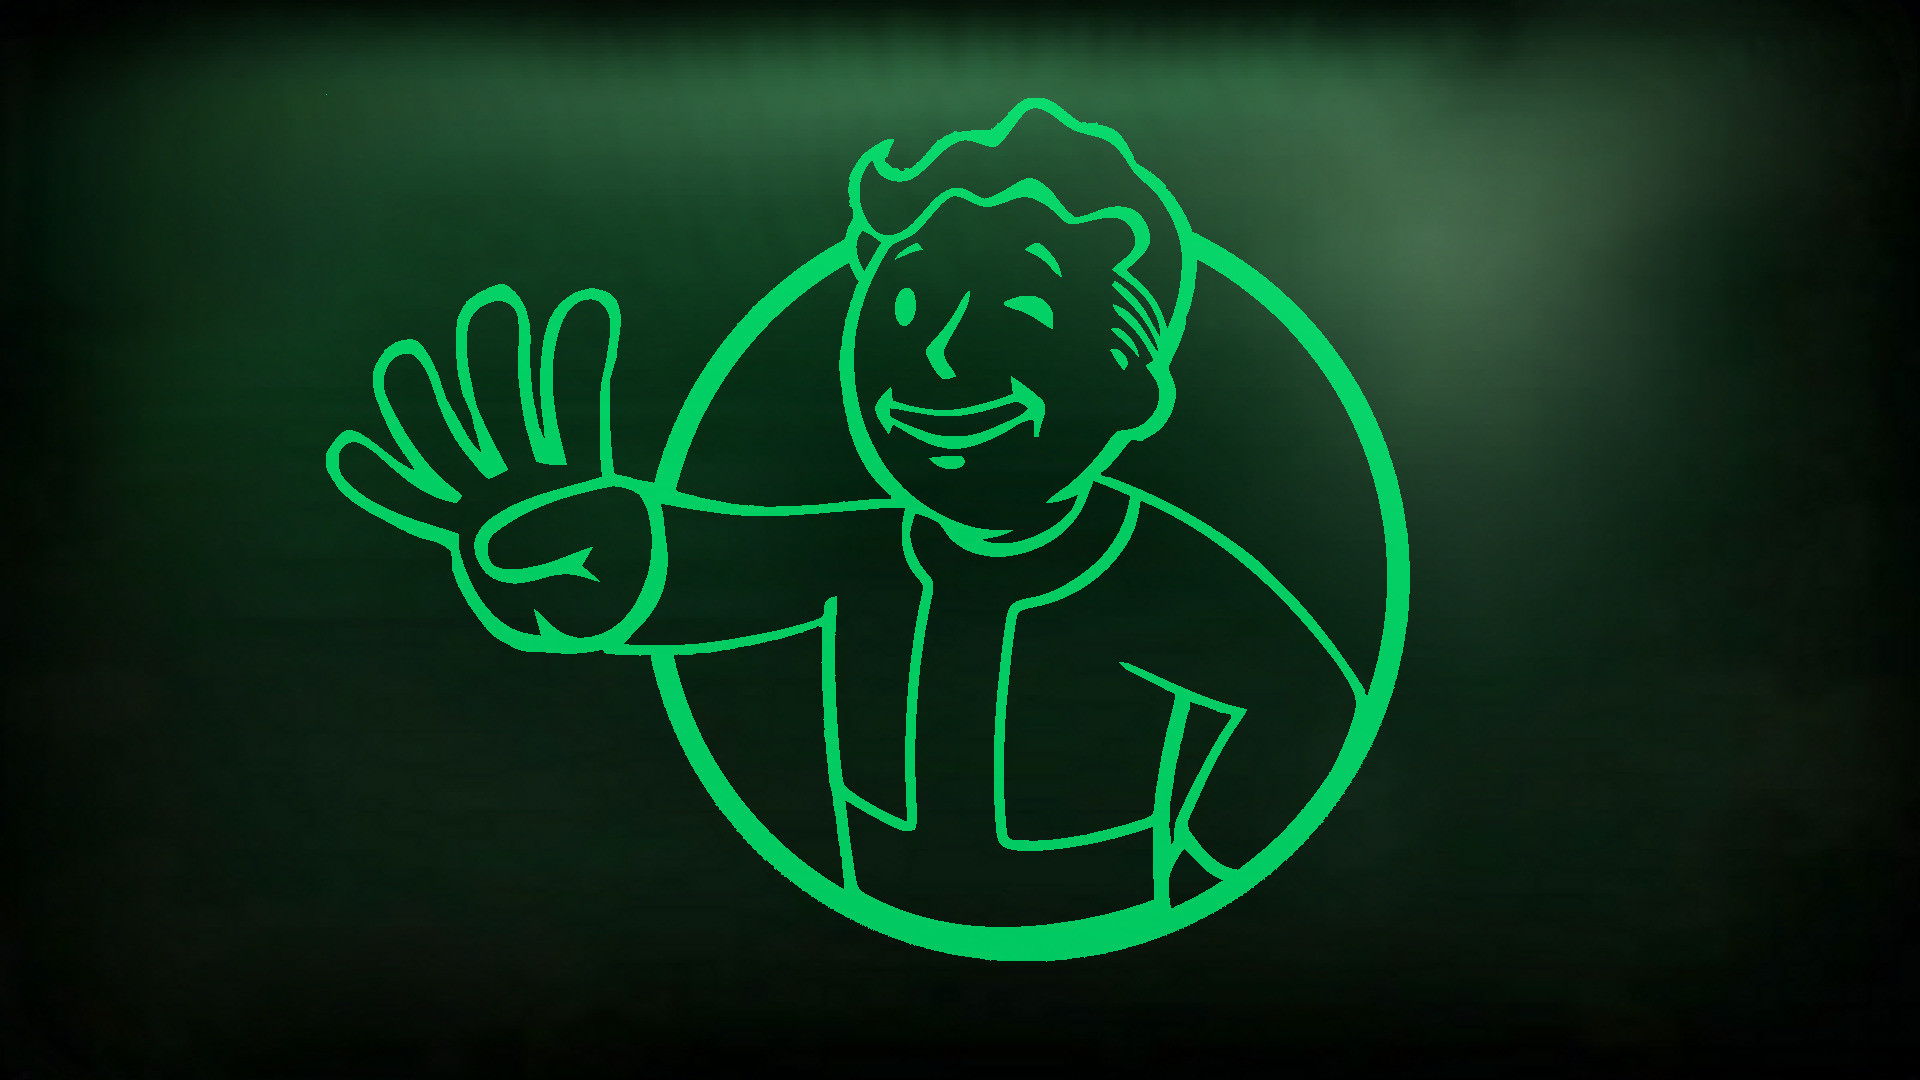 Fallout, Fallout 4, Vault Boy Wallpapers HD / Desktop and Mobile Backgrounds